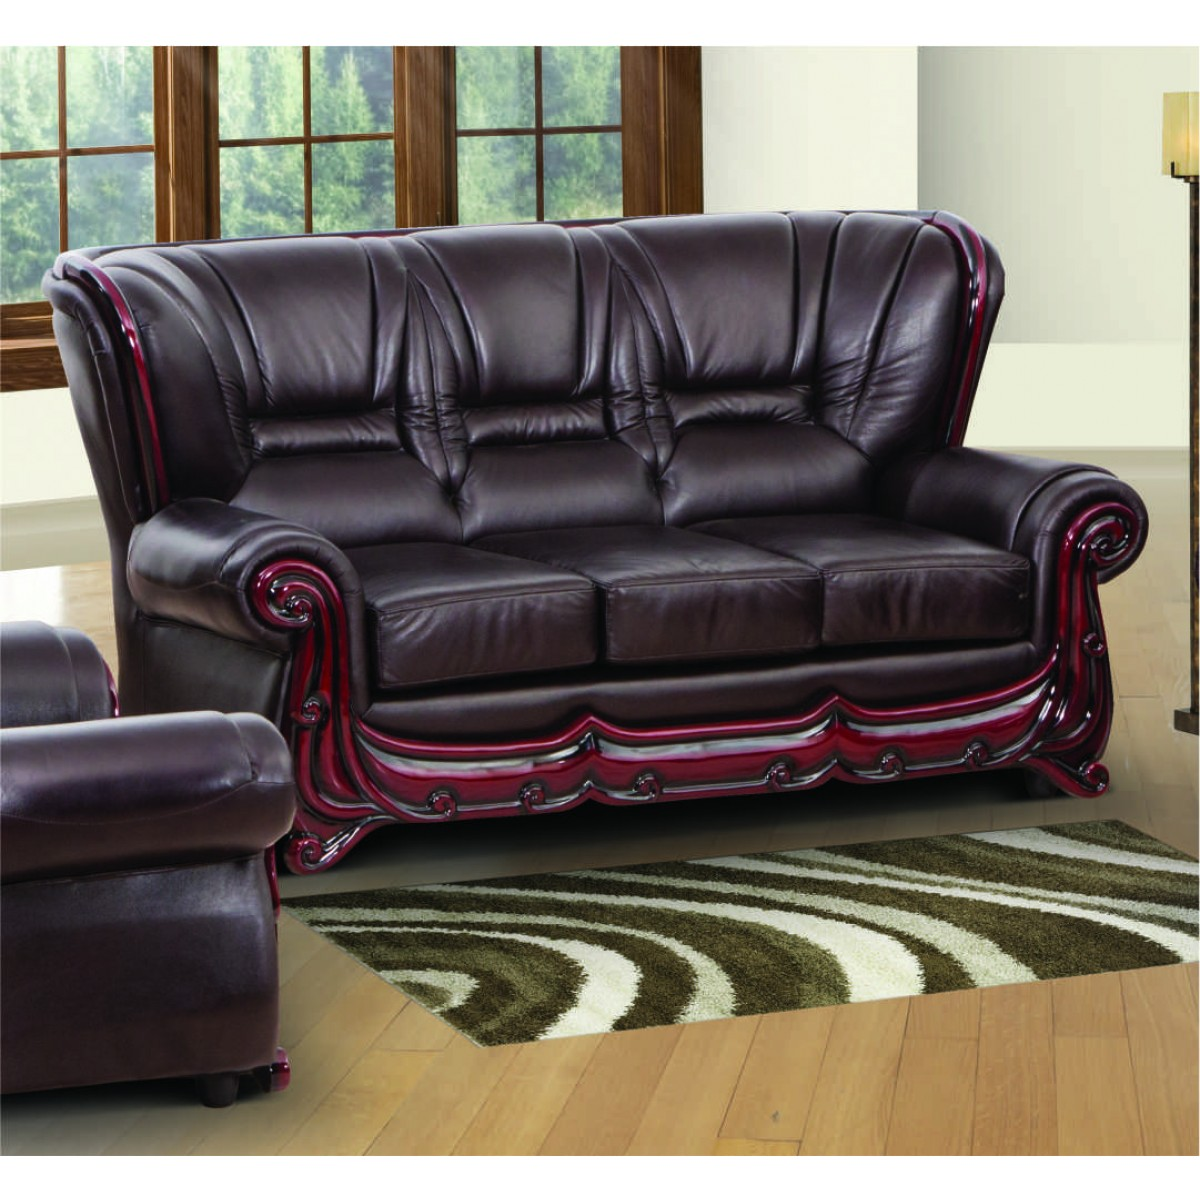 sofa set models in india lounger images clancy damro